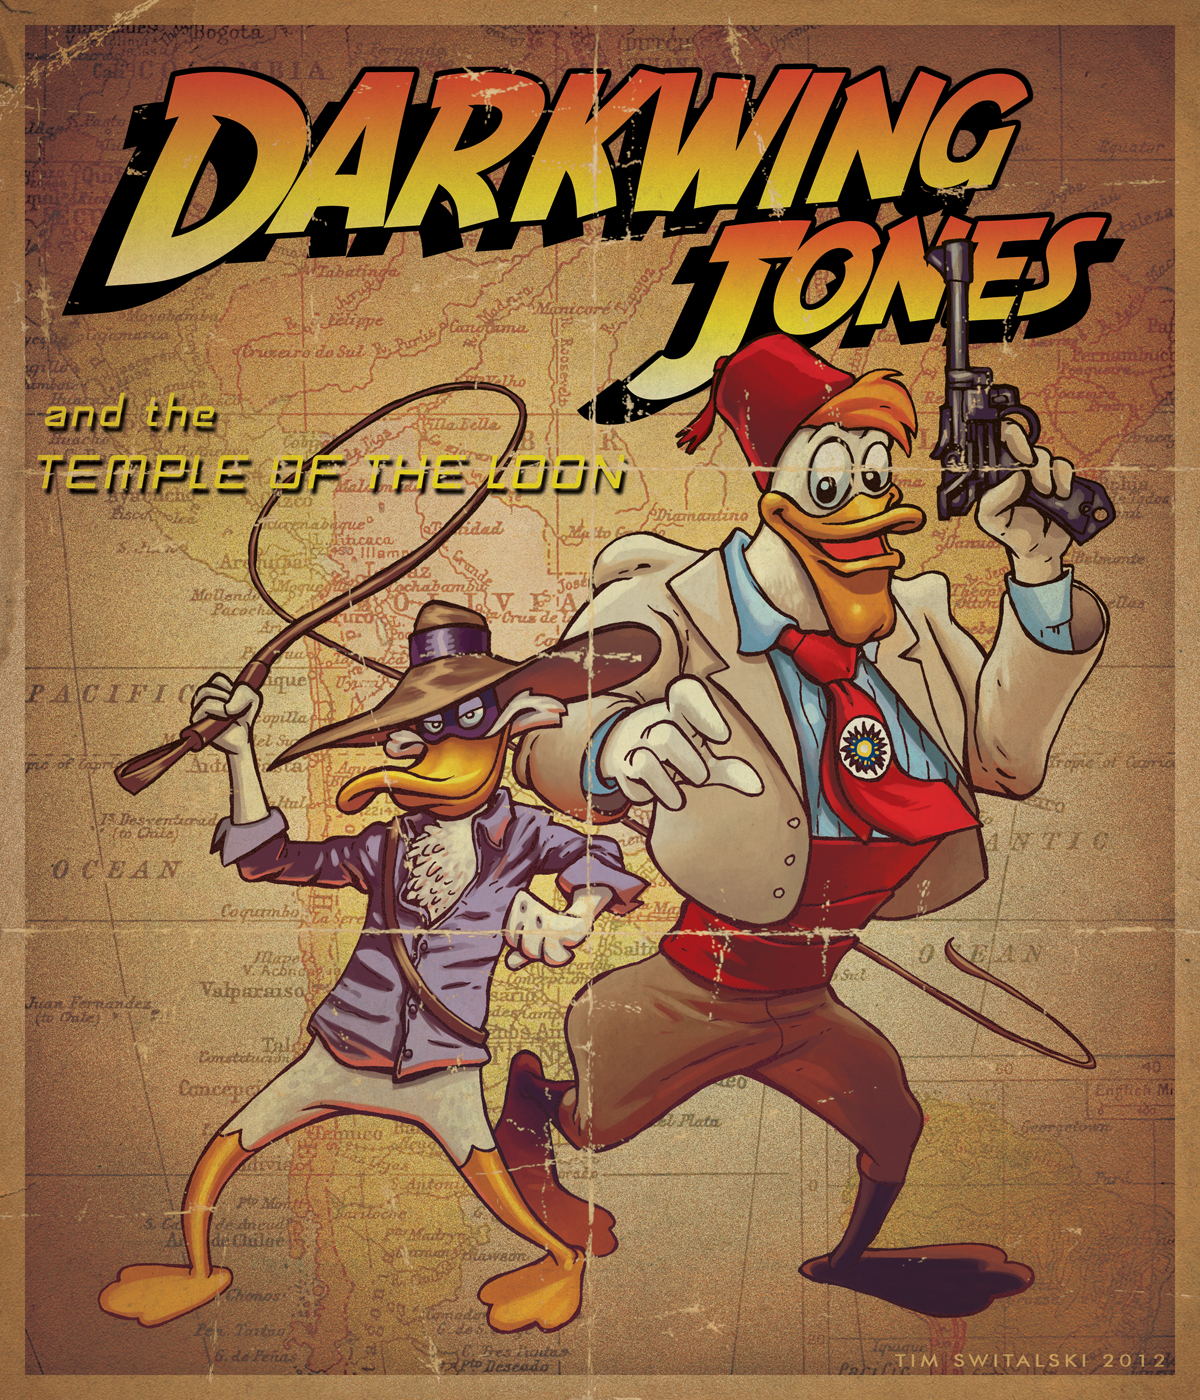 Darkwing+Jones.jpg